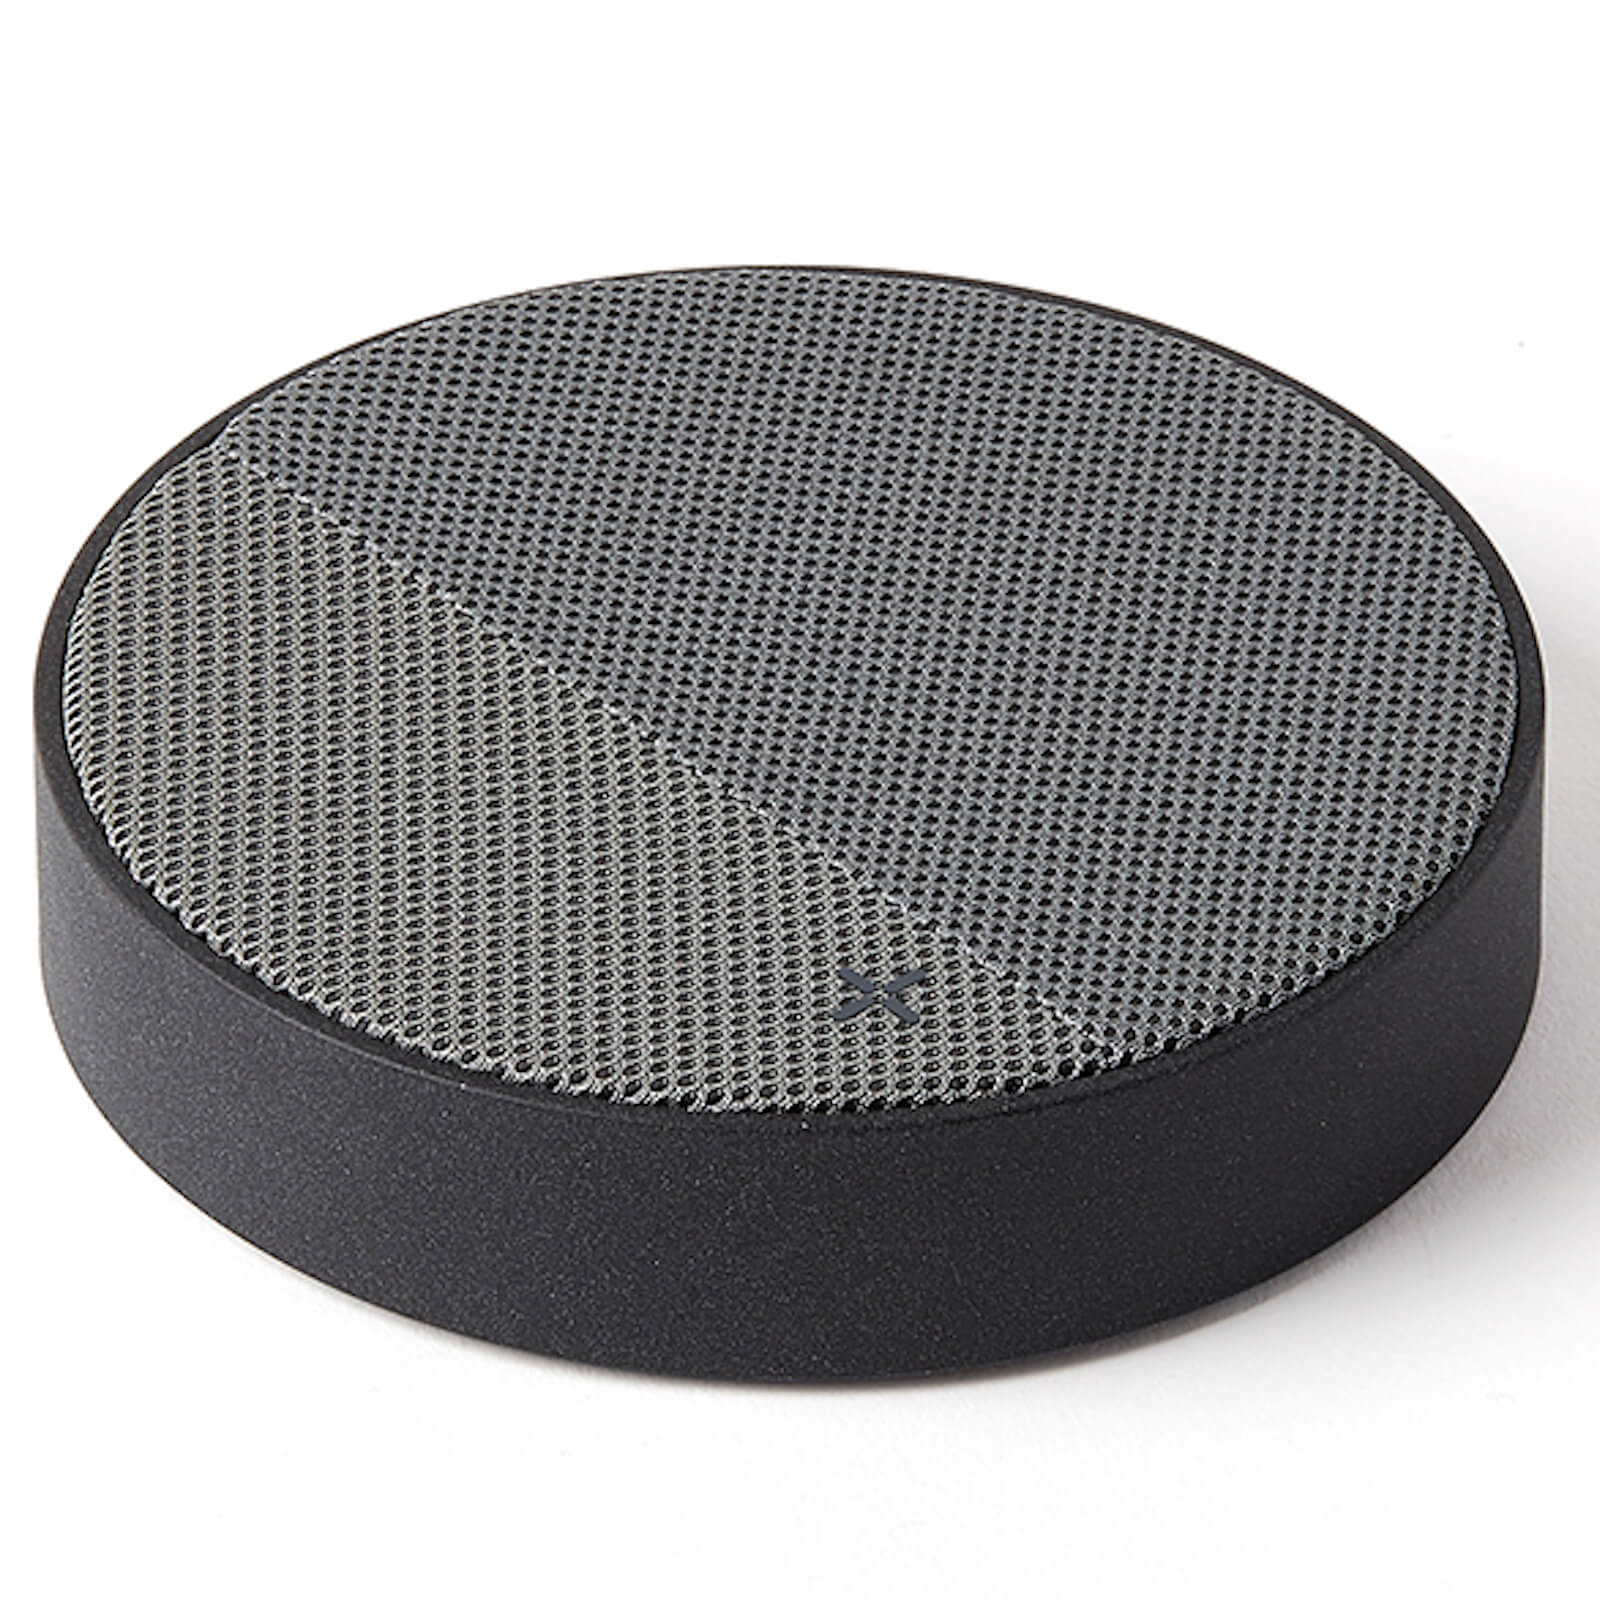 Lexon Oslo Energy Wireless Charger and Bluetooth Speaker - Grey